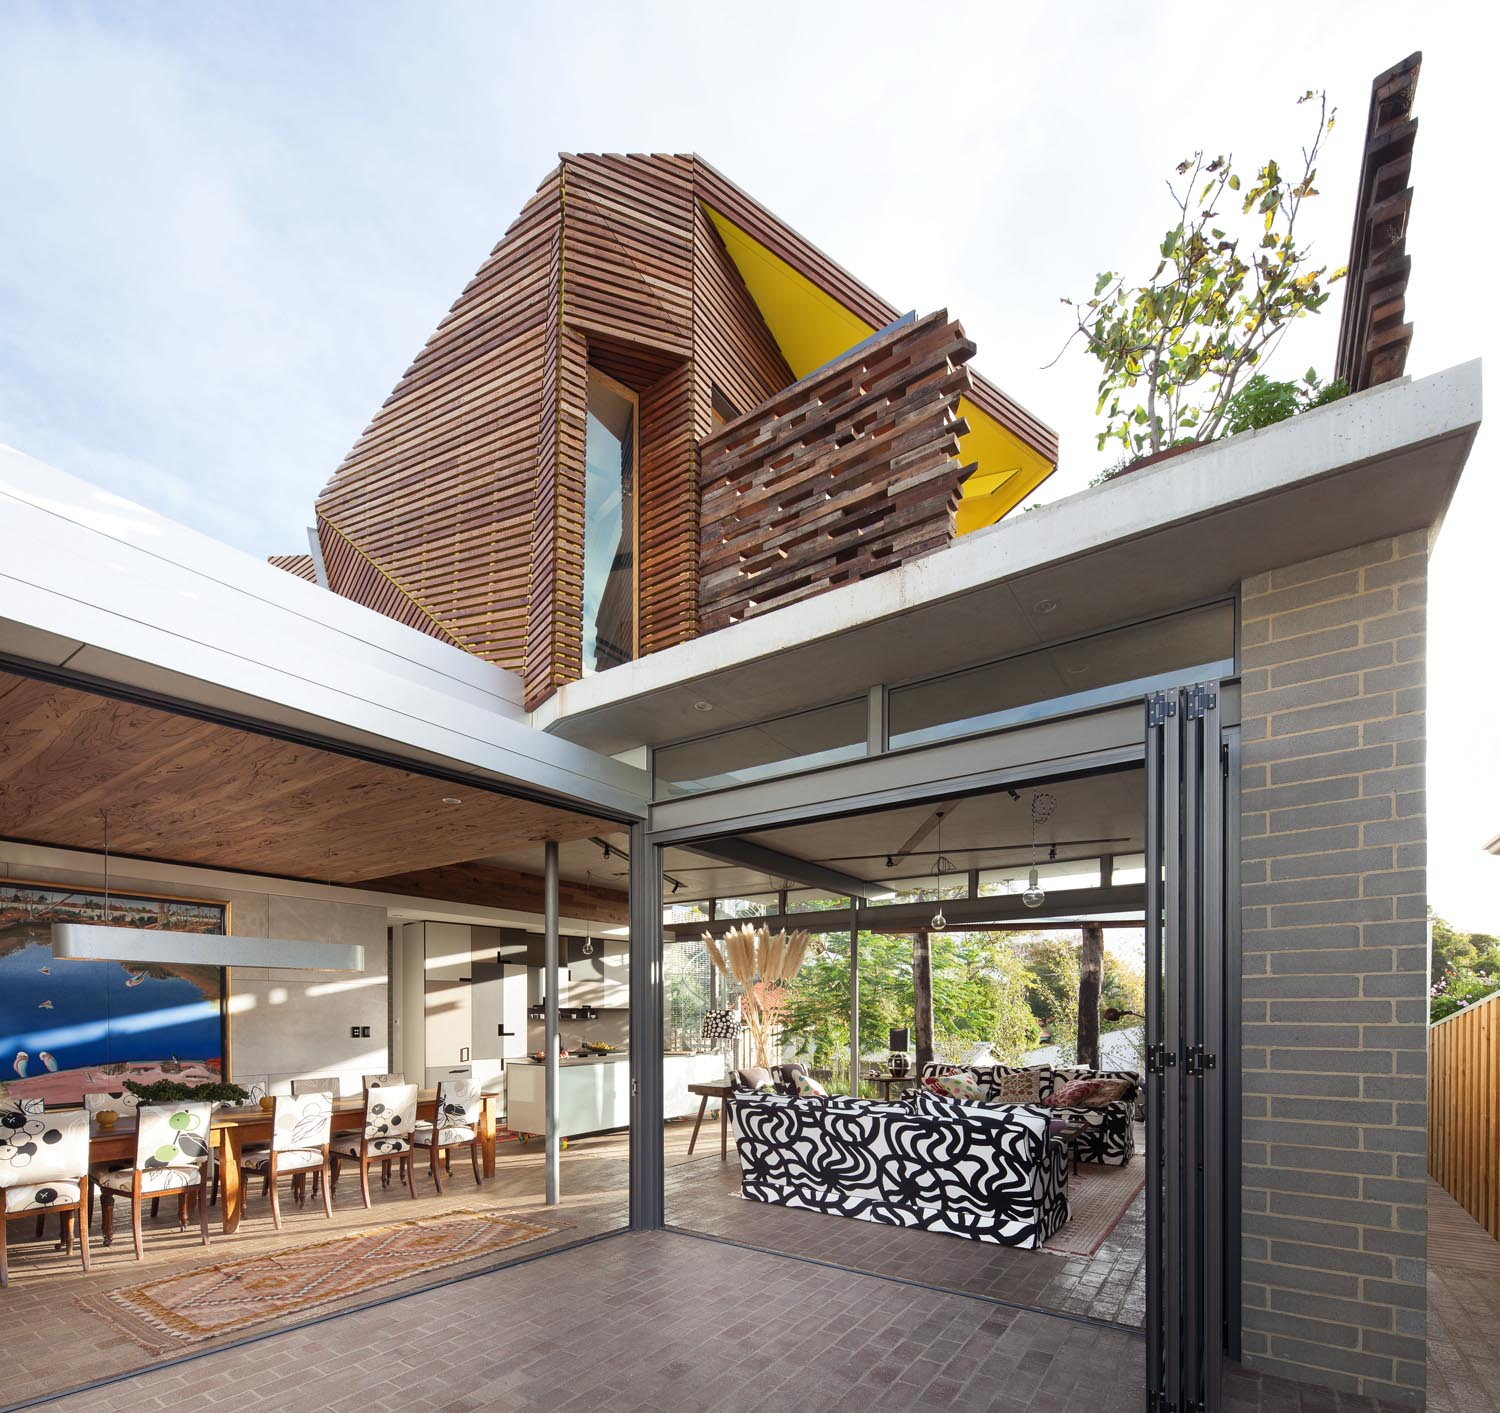 Home Design Ideas Australia: Grand Designs Australia: Origami House